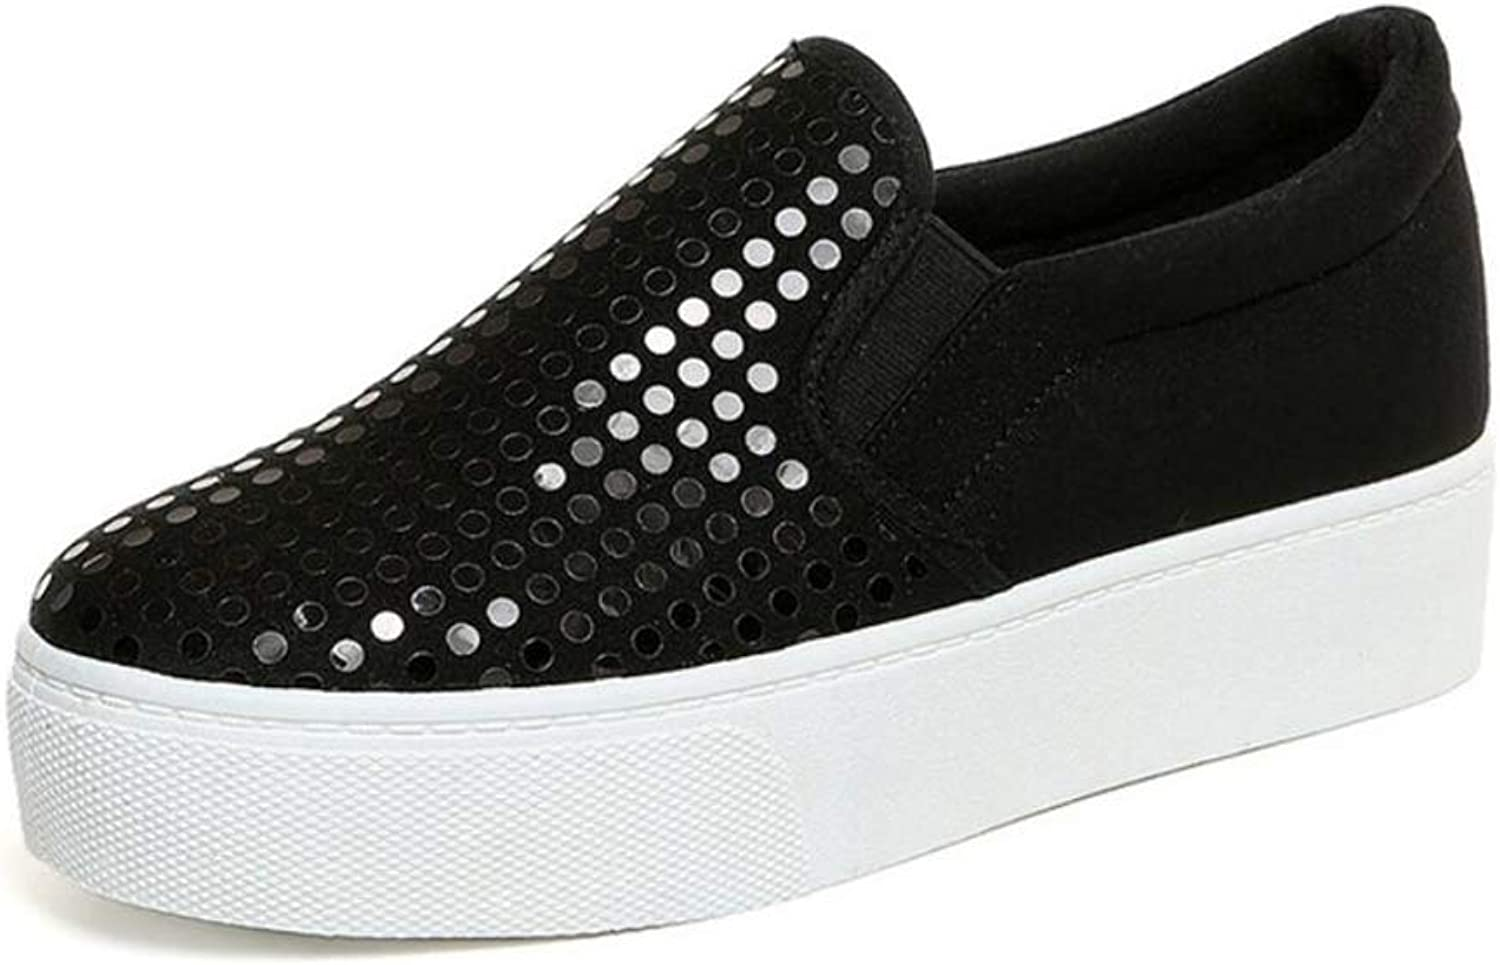 Excellent.c Sequins Breathable Casual Loafers Versatile Comfortable Increased Canvas shoes